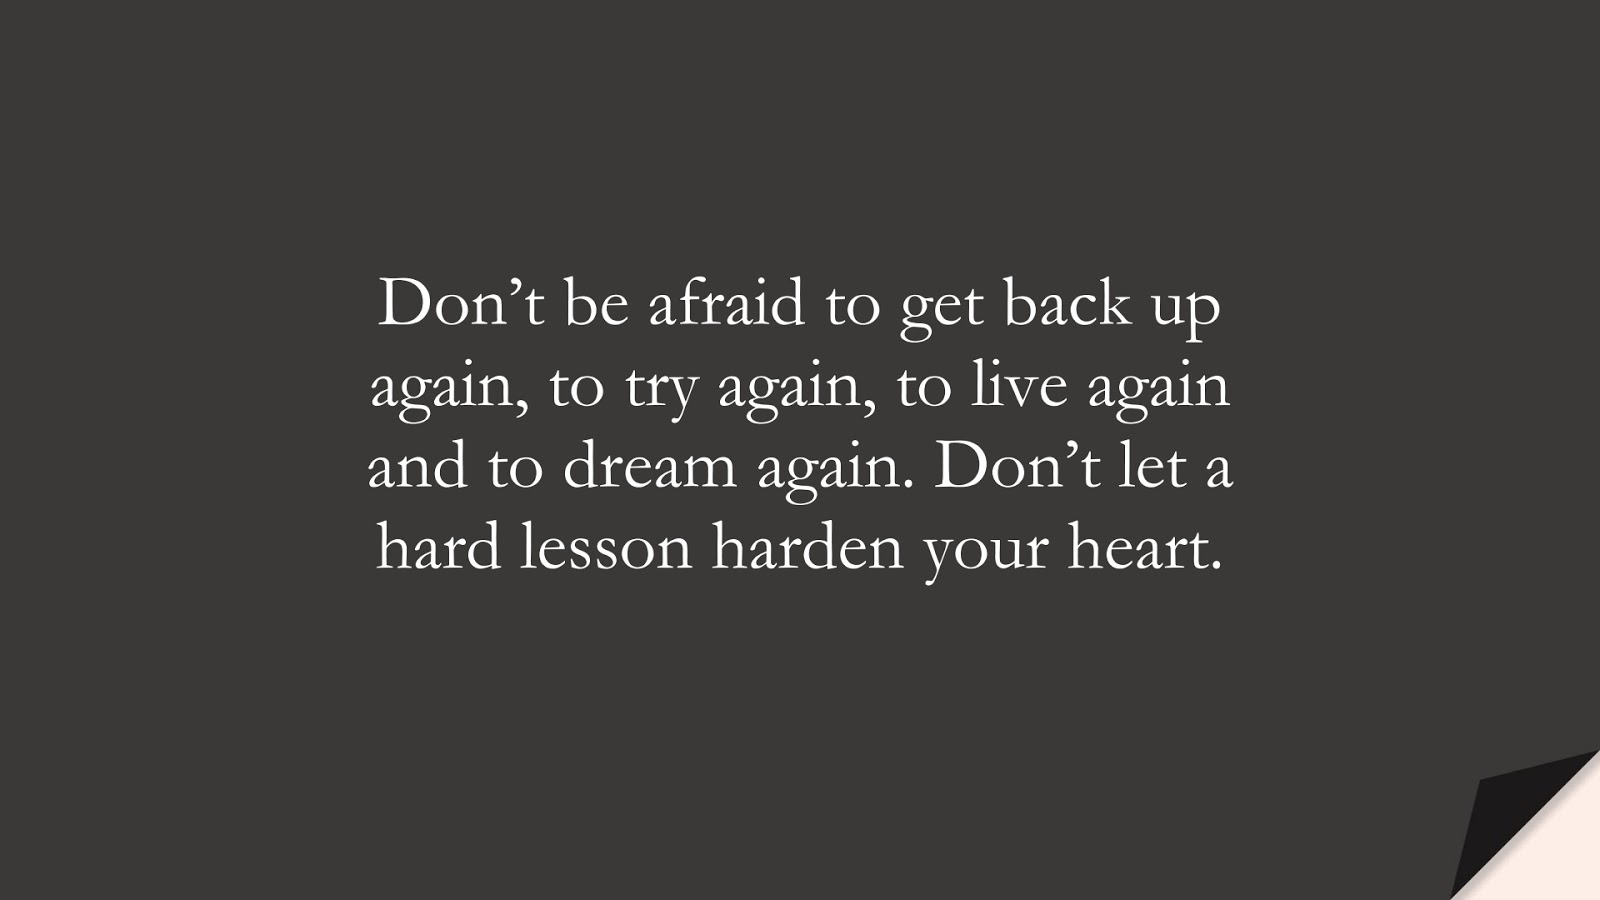 Don't be afraid to get back up again, to try again, to live again and to dream again. Don't let a hard lesson harden your heart.FALSE